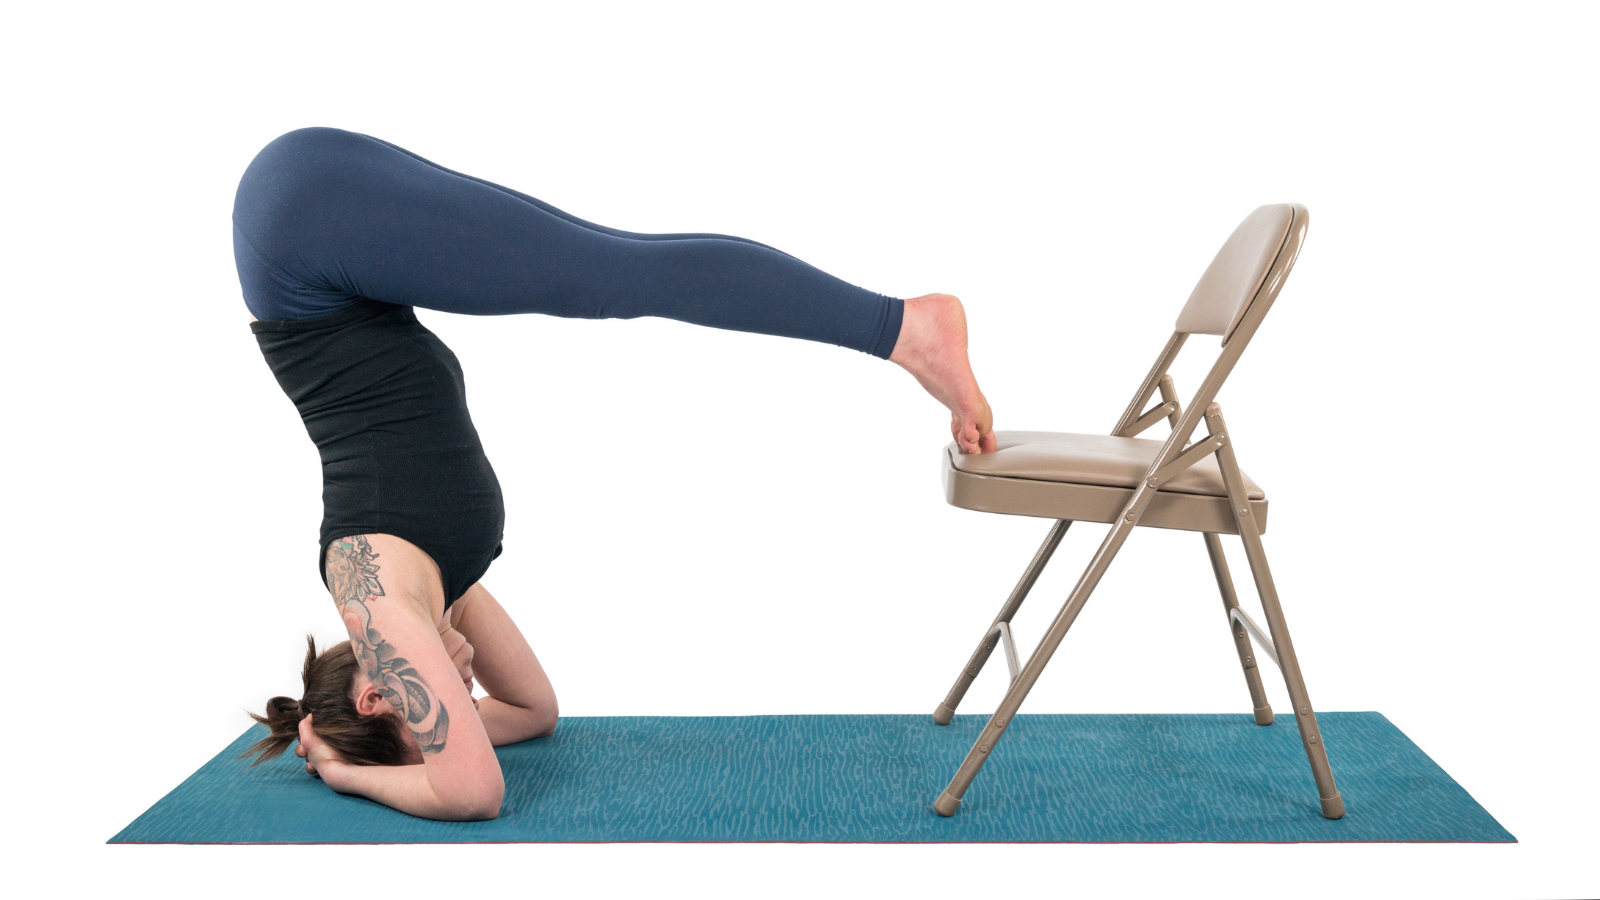 Yoga student practicing inversions Headstand Pose (Salamba Sirsasana) with a chair while menstruating